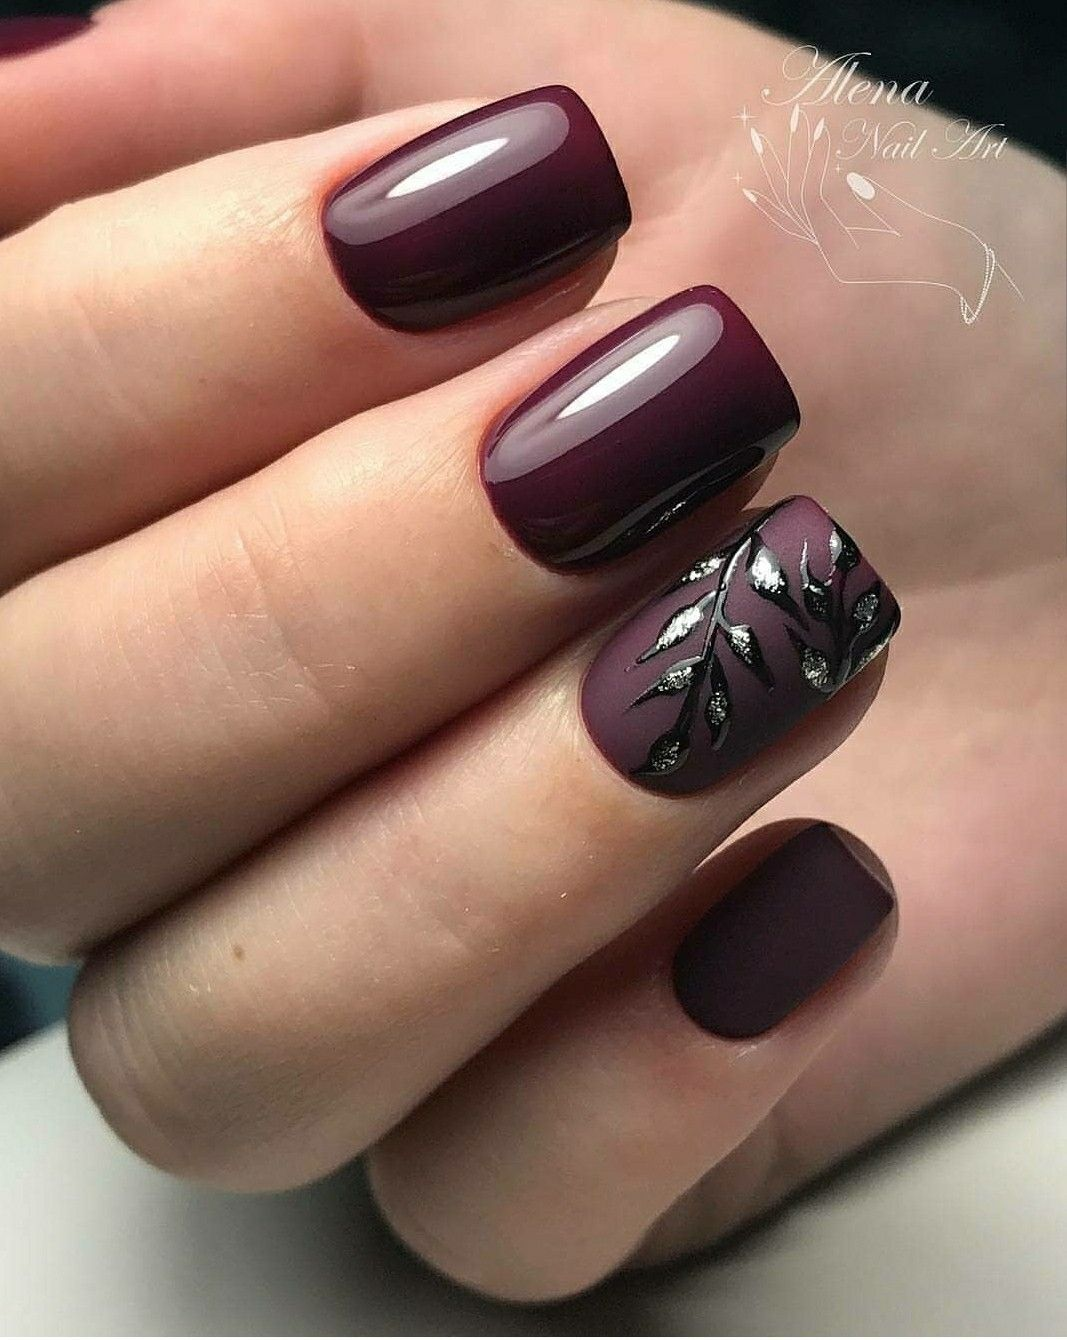 Pin by Stephanie on Nails | Pinterest | Makeup, Manicure and Nail nail